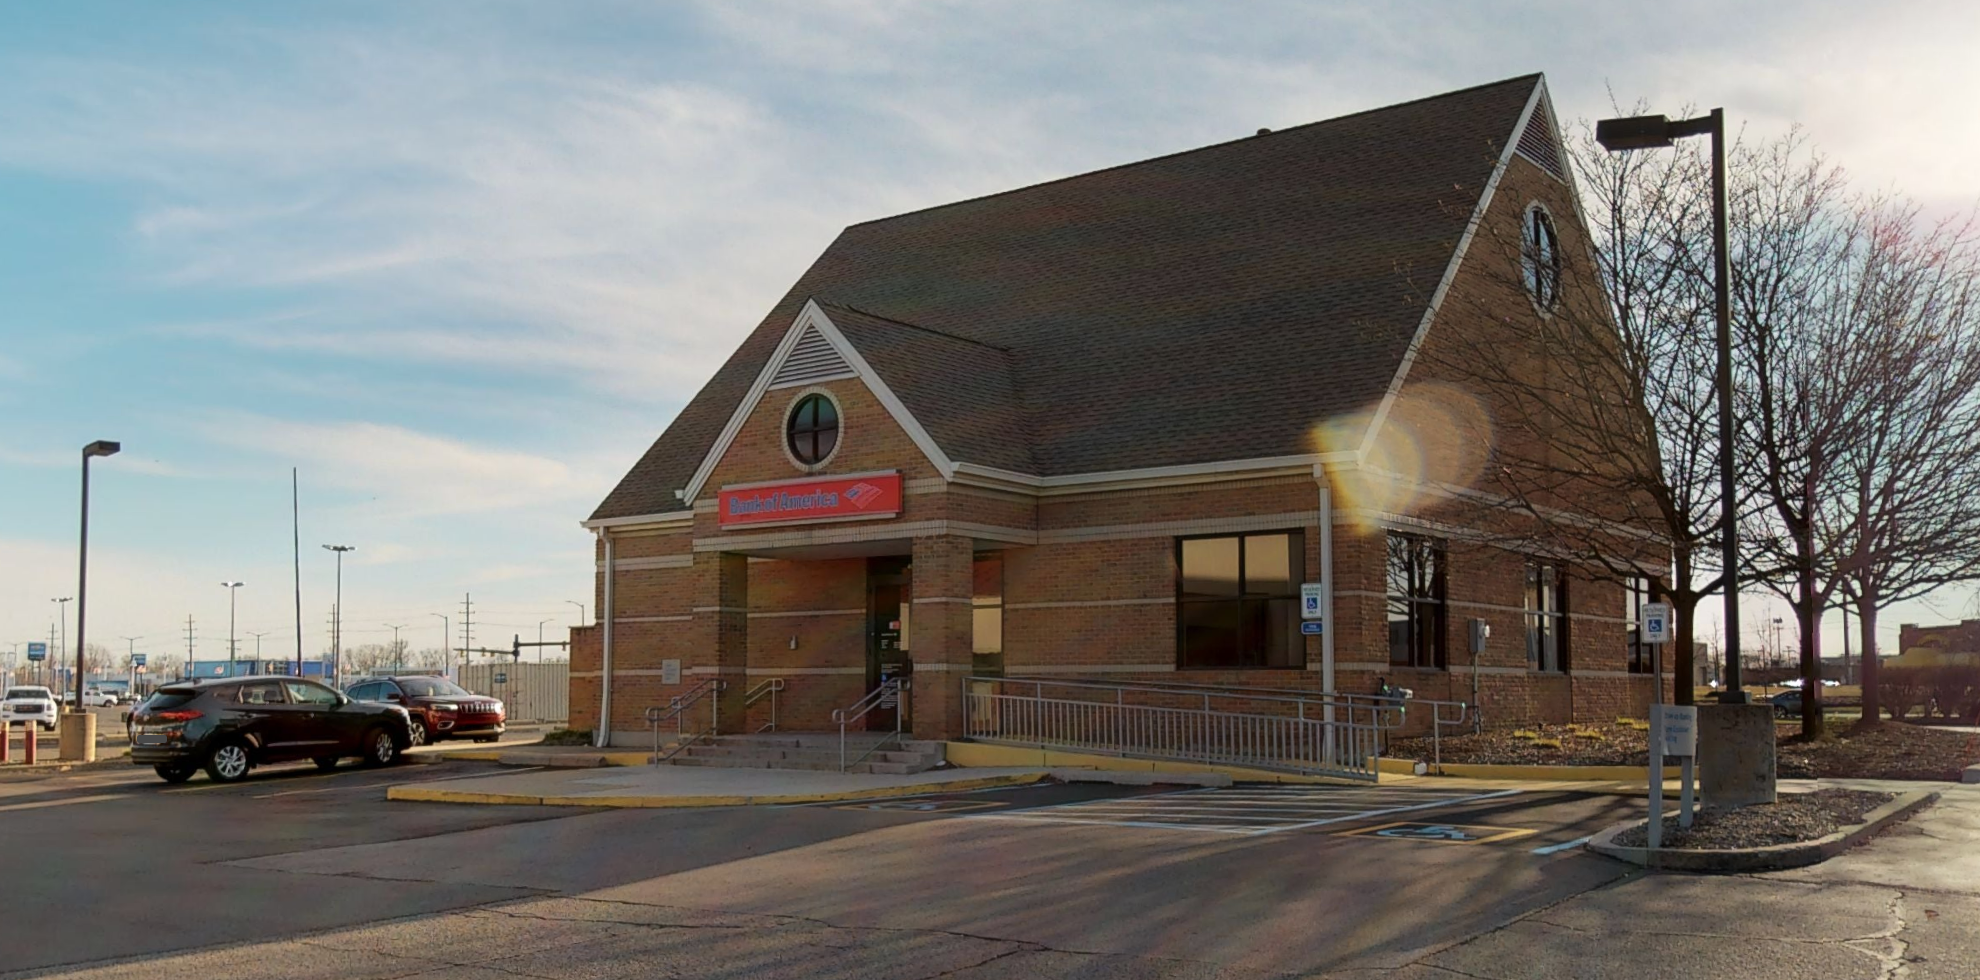 Bank of America financial center with drive-thru ATM | 40950 Van Dyke Ave, Sterling Heights, MI 48313